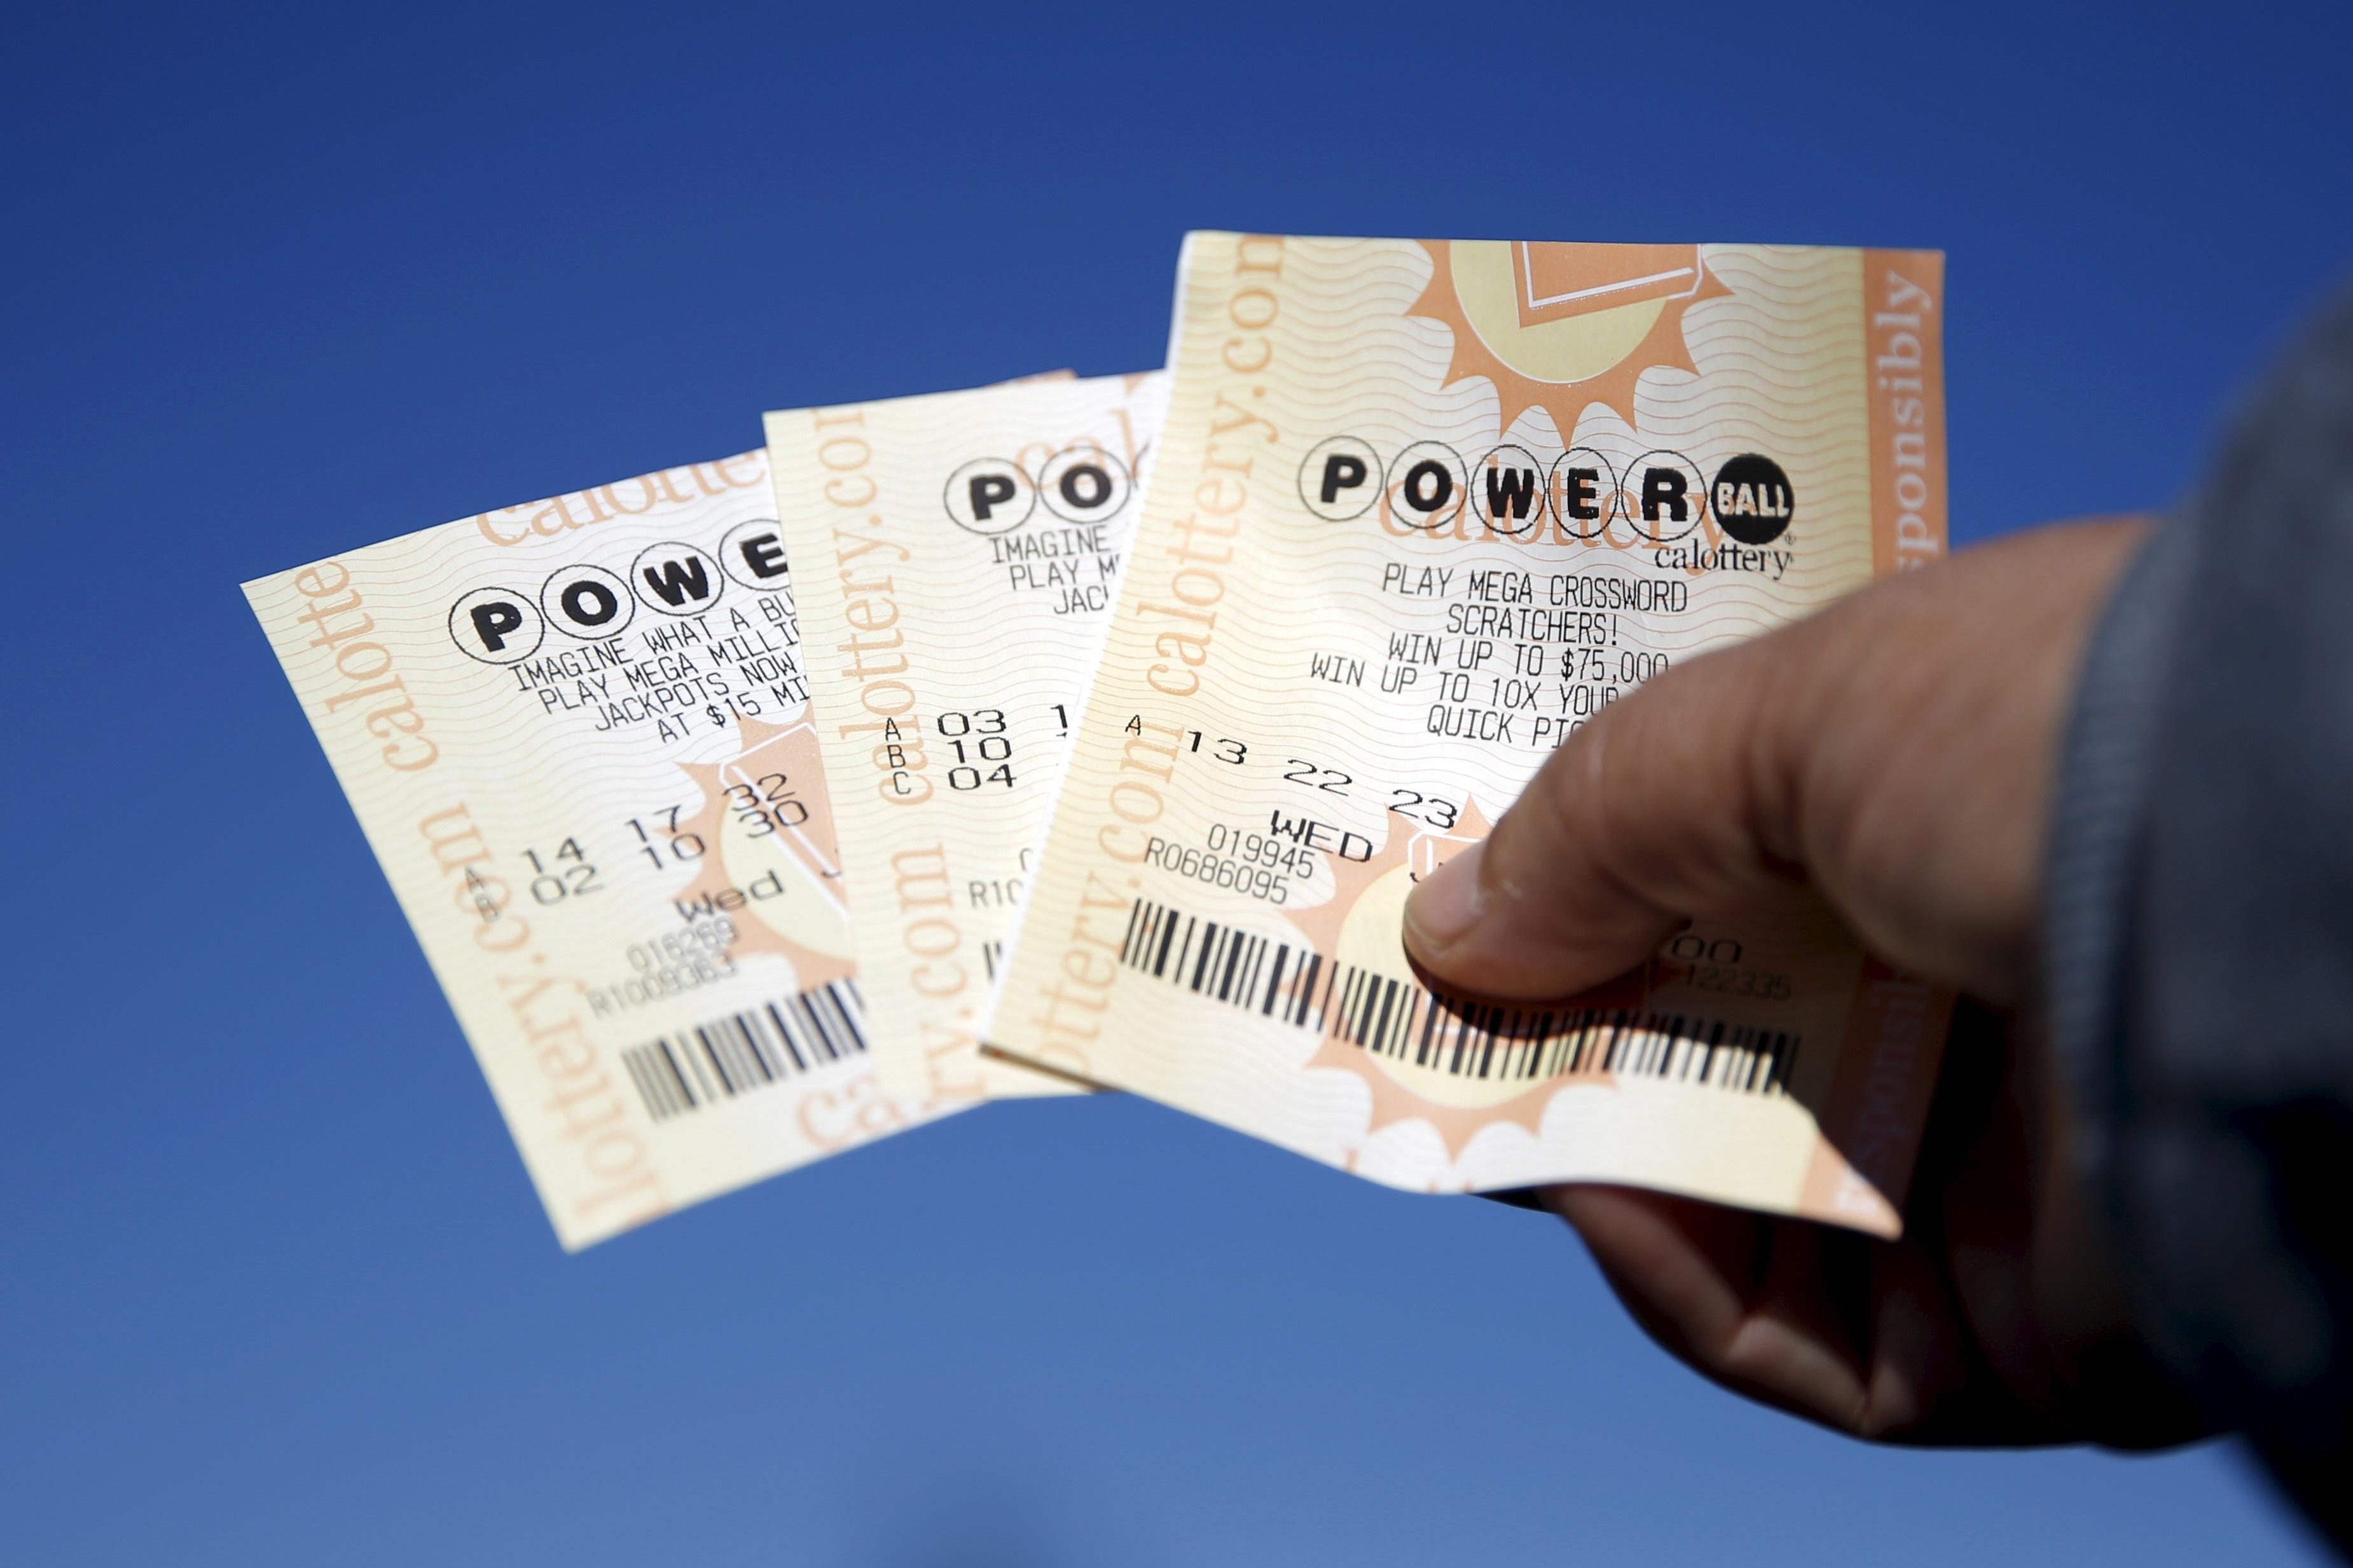 Powerball Jackpot Live Stream Time Channel How To Watch Next